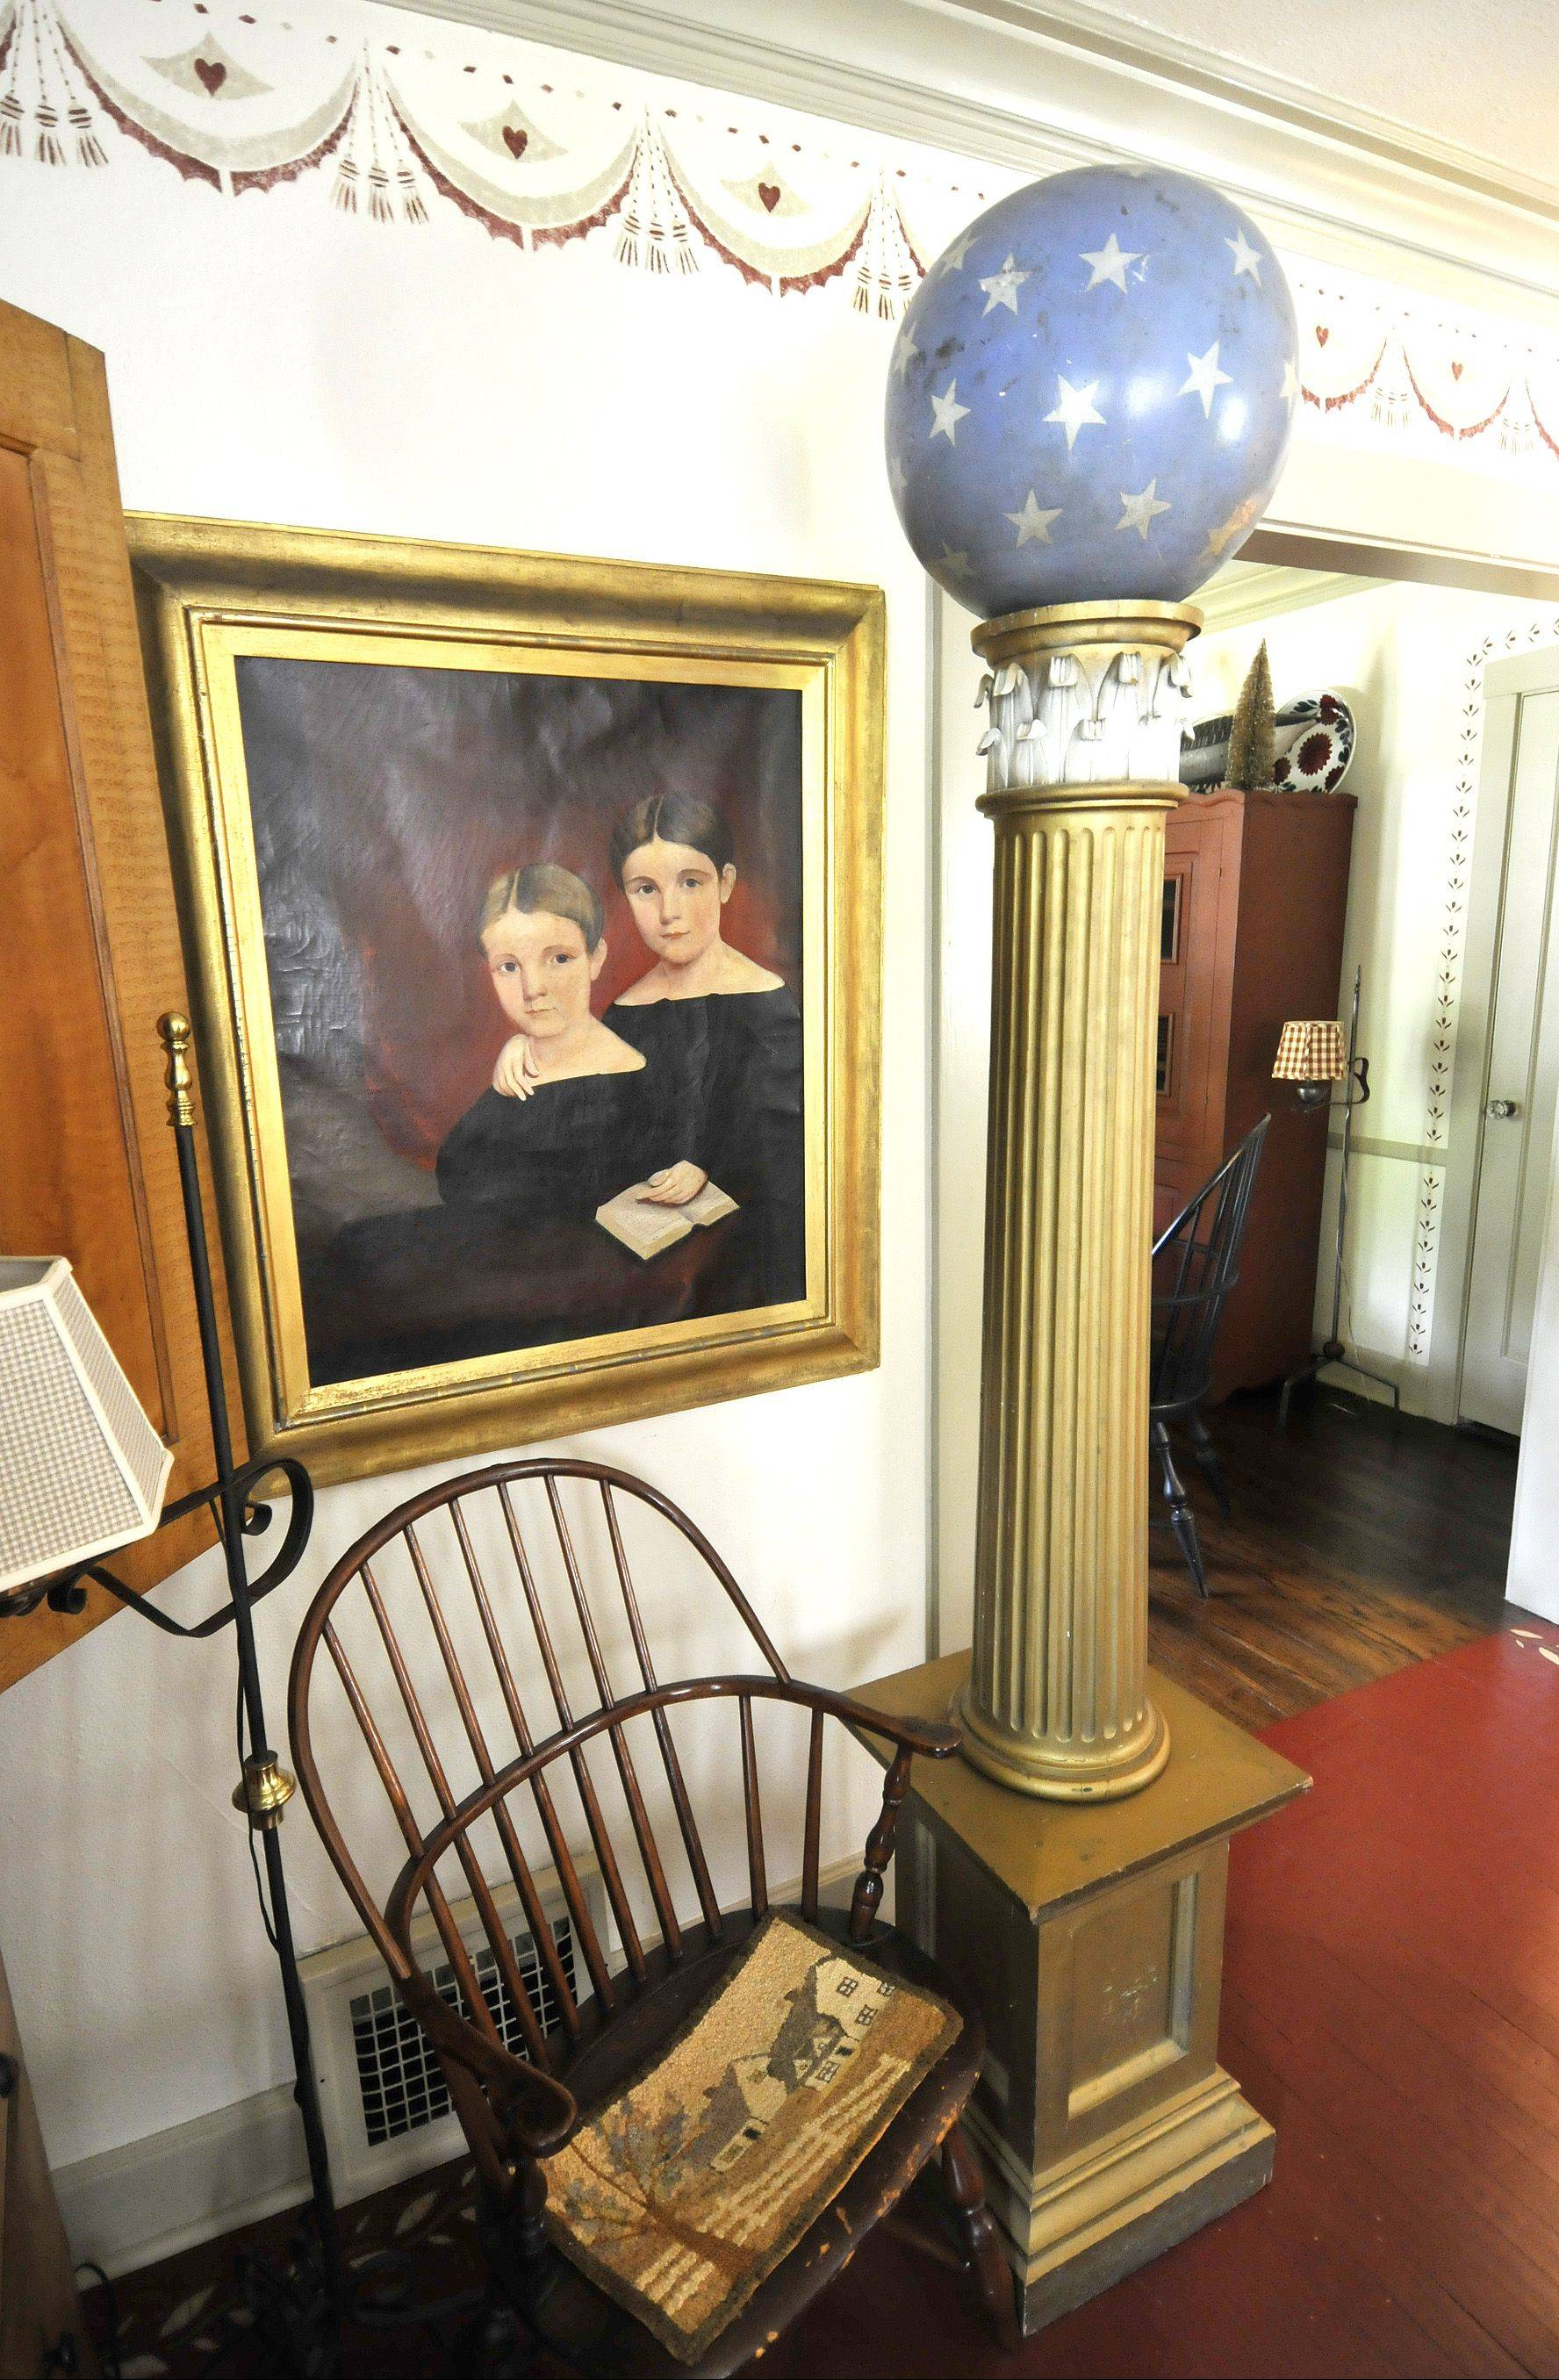 The Larsen's living room is full of antiques, including this double portrait from 1837 featuring a gold leaf ogee curve frame. Also in the photo are a masonic column from 1870 with a ball representing heaven on top, and an American Windsor chair from 1780.